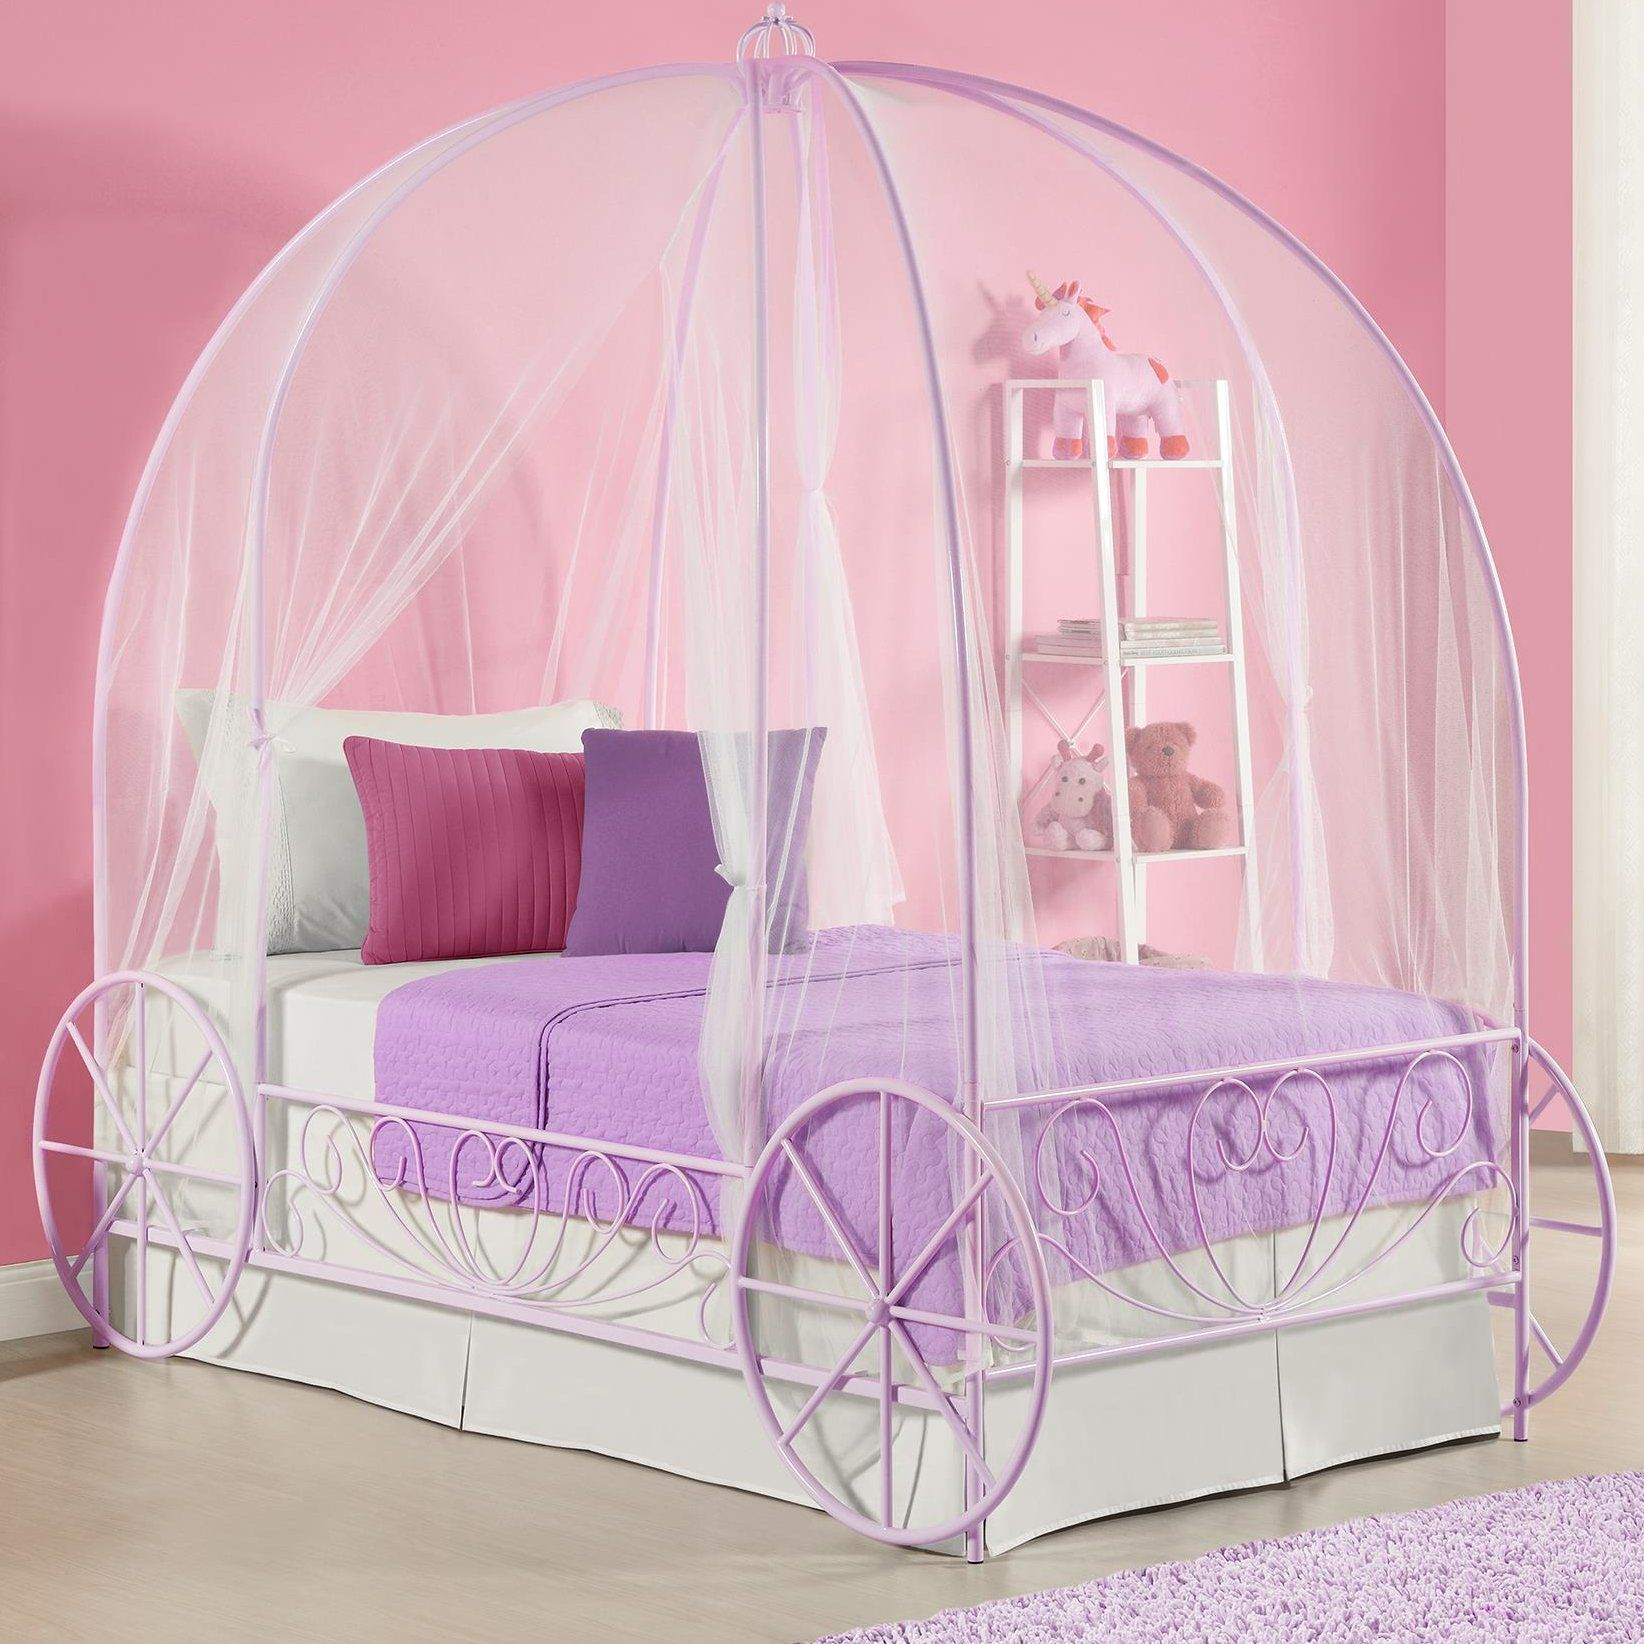 German Twin Canopy Bed Carriage bed, Princess carriage